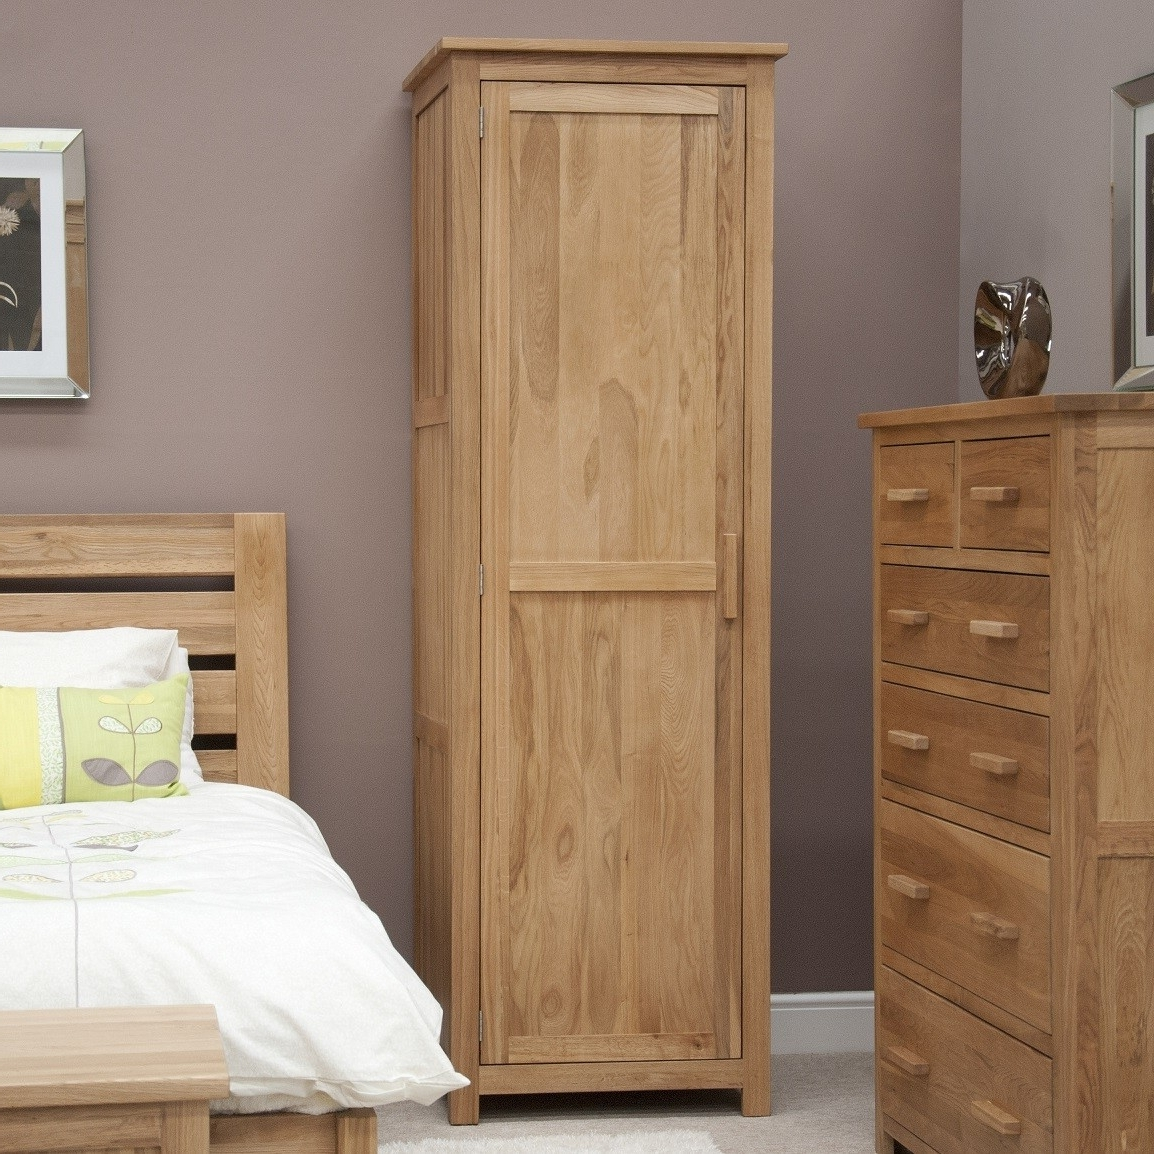 Single Wardrobe Doors Mirror Door With Drawers Elegant Best Design With Regard To 2018 Single Oak Wardrobes With Drawers (View 11 of 15)